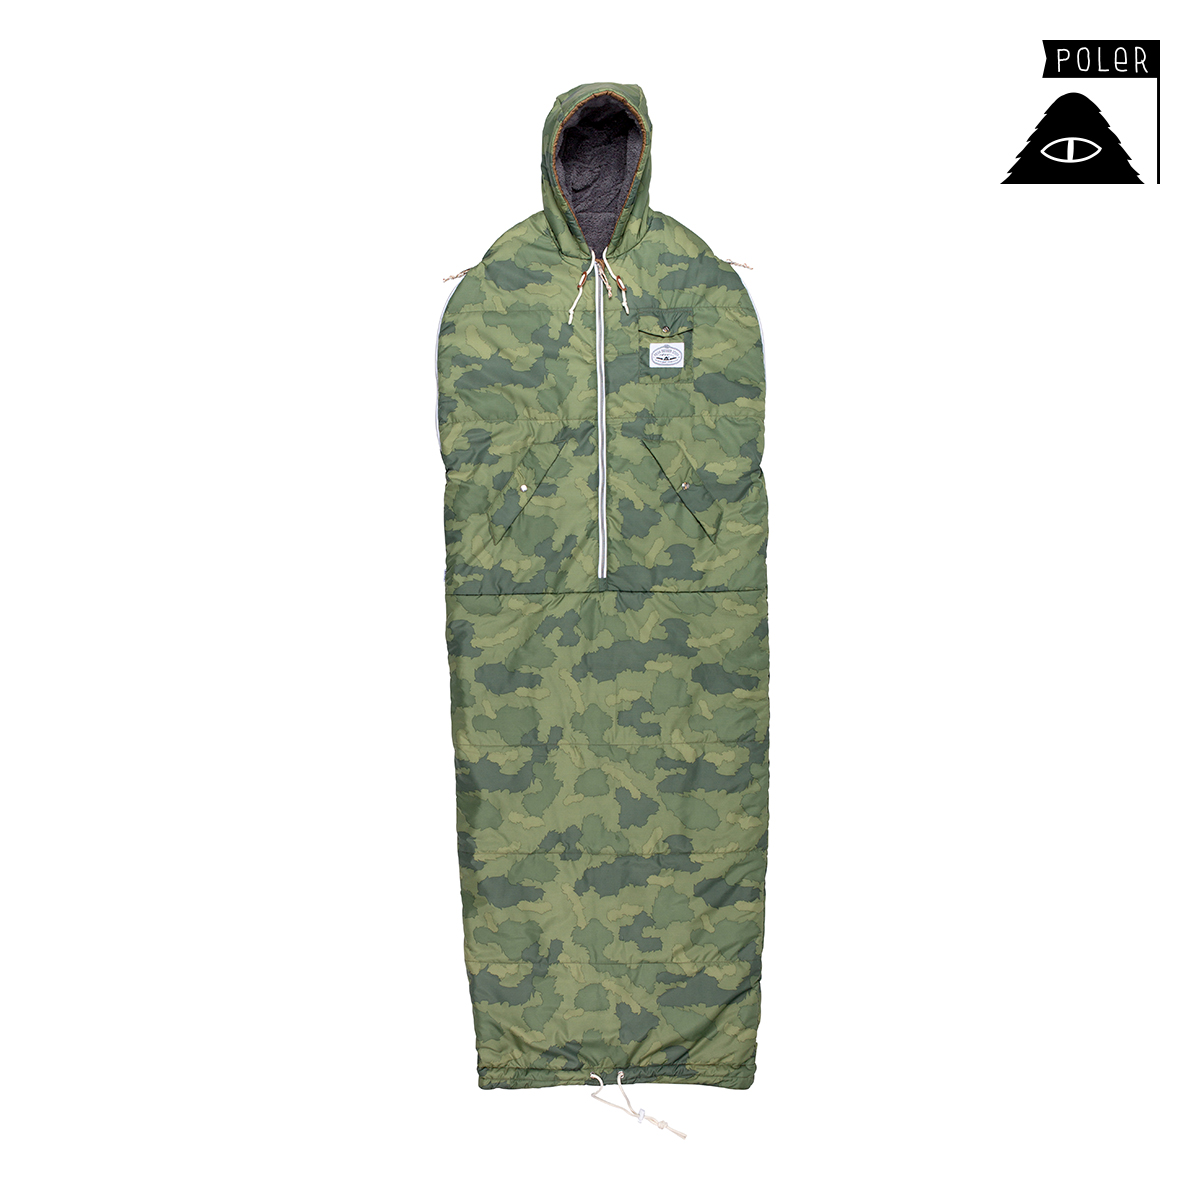 폴러 The Shaggy Napsack - Green Furrt Camo D